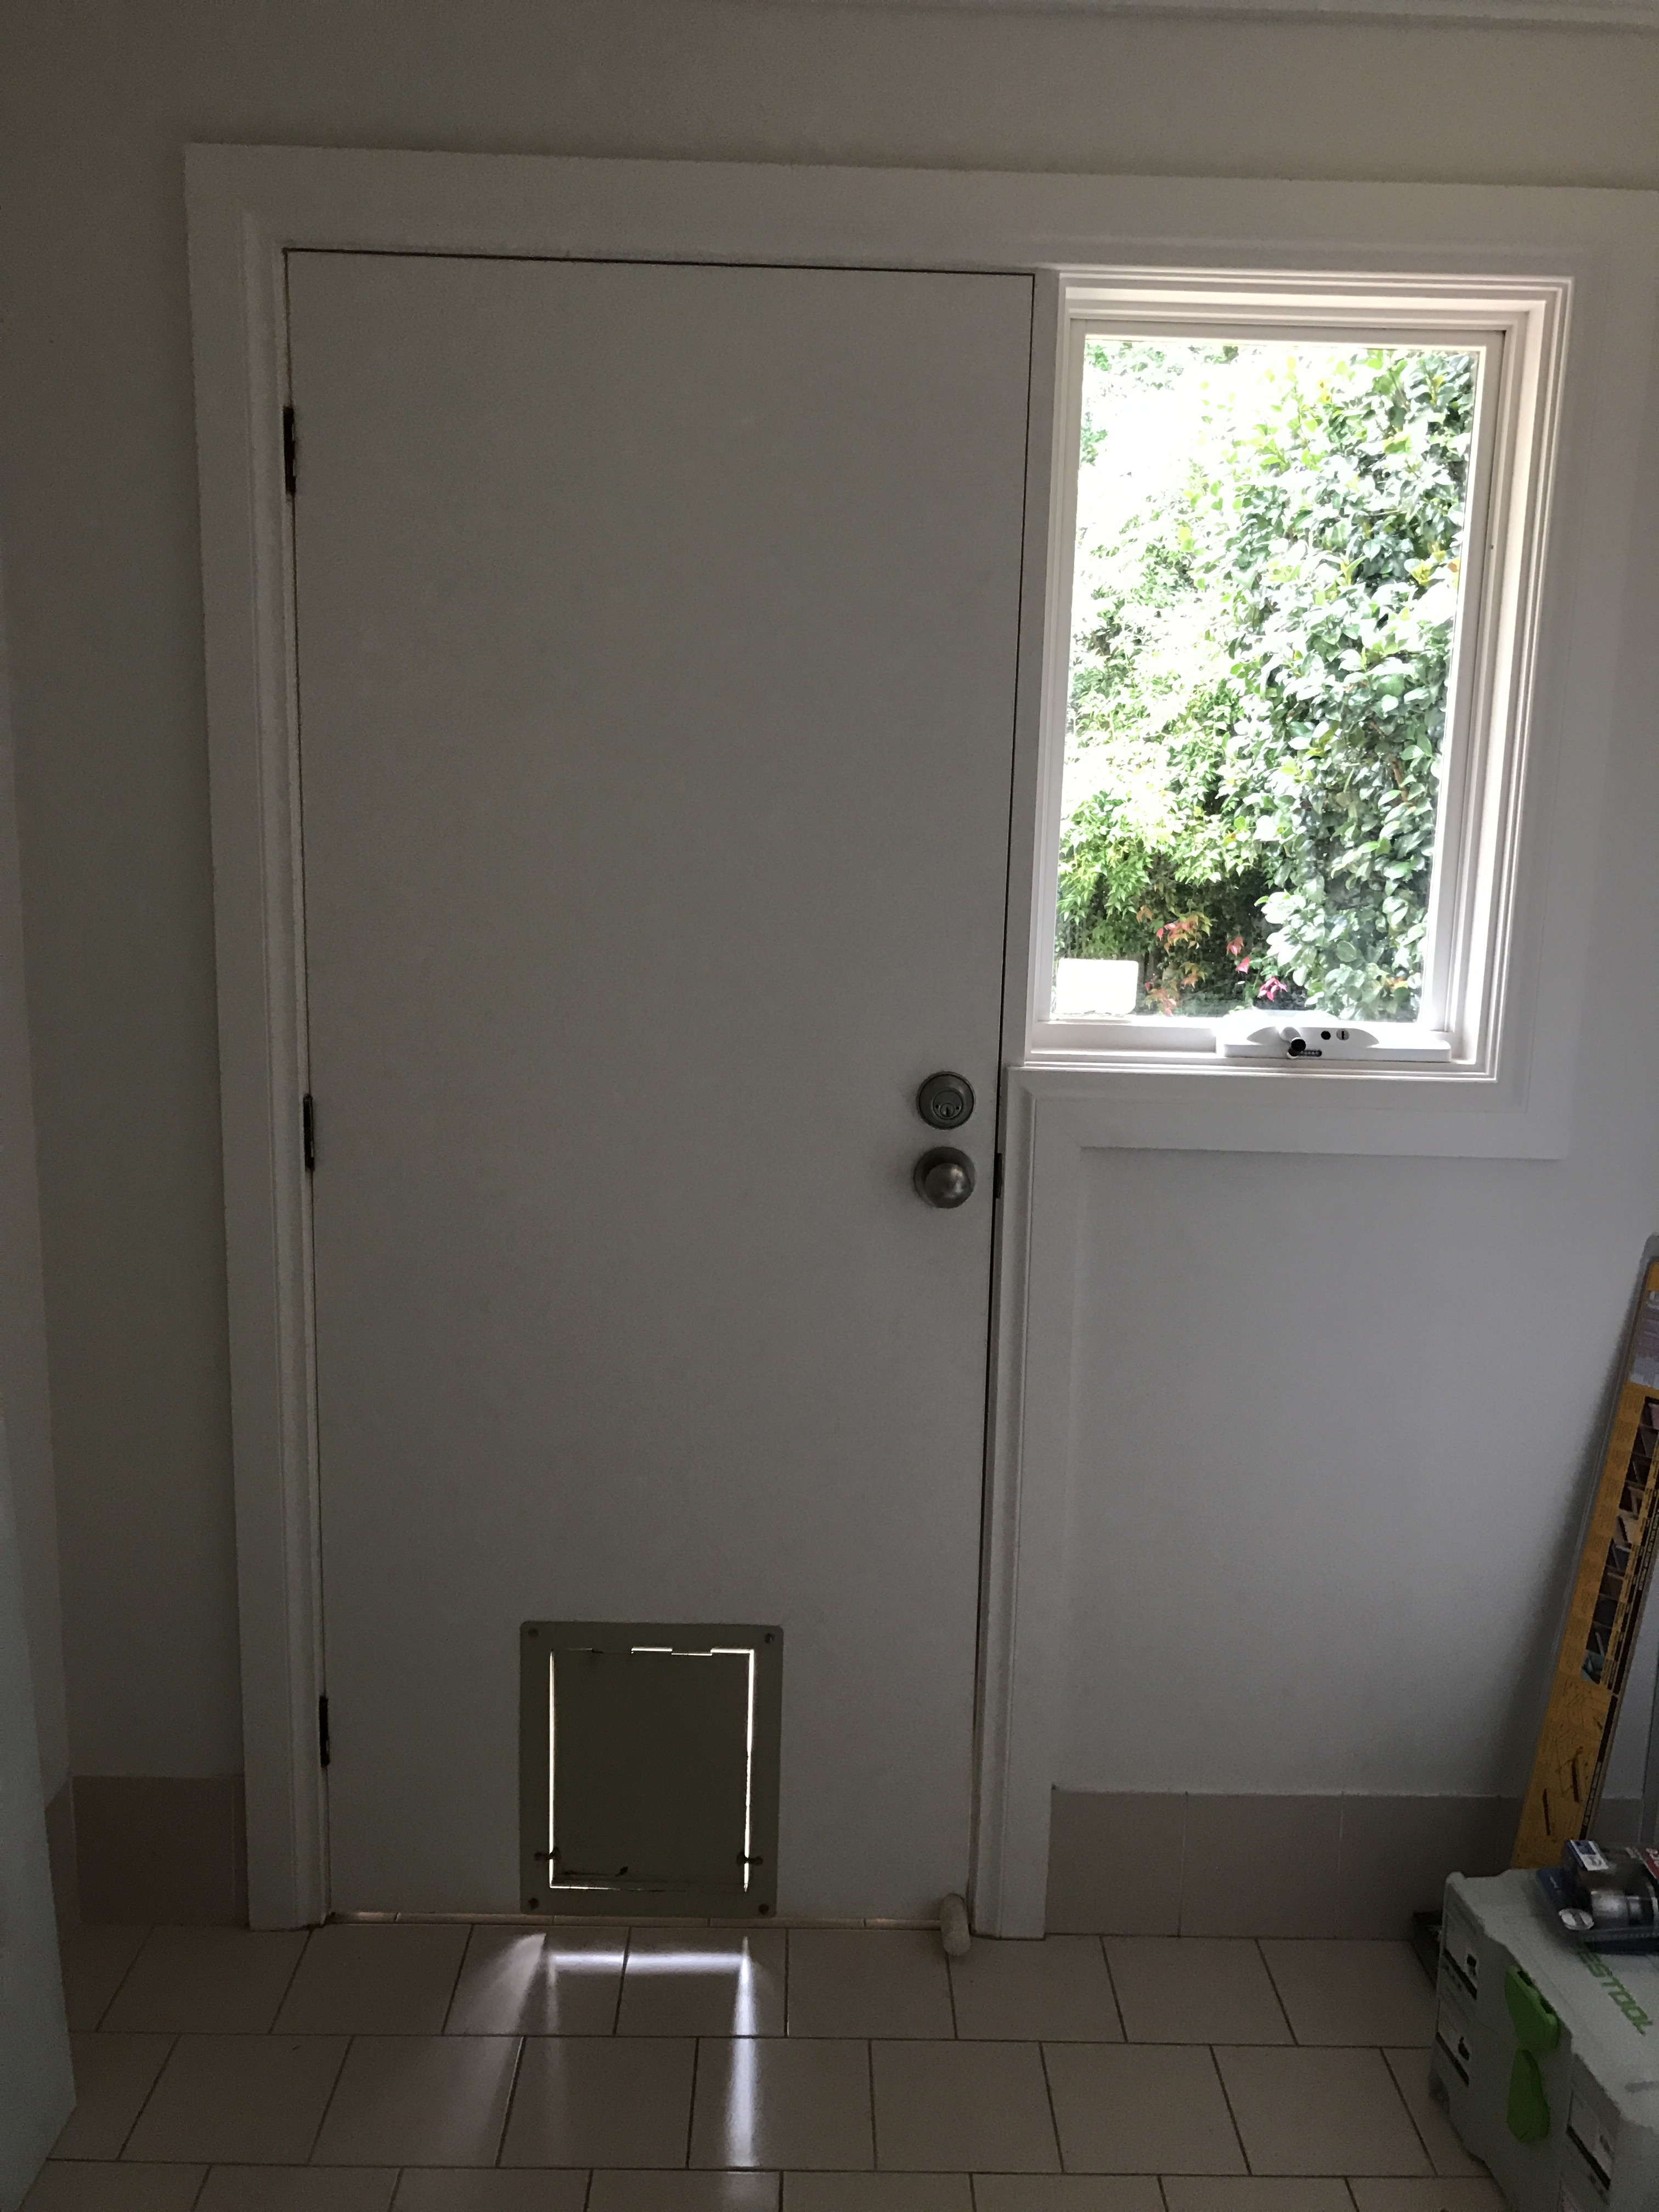 2c - Replace Laundry Door